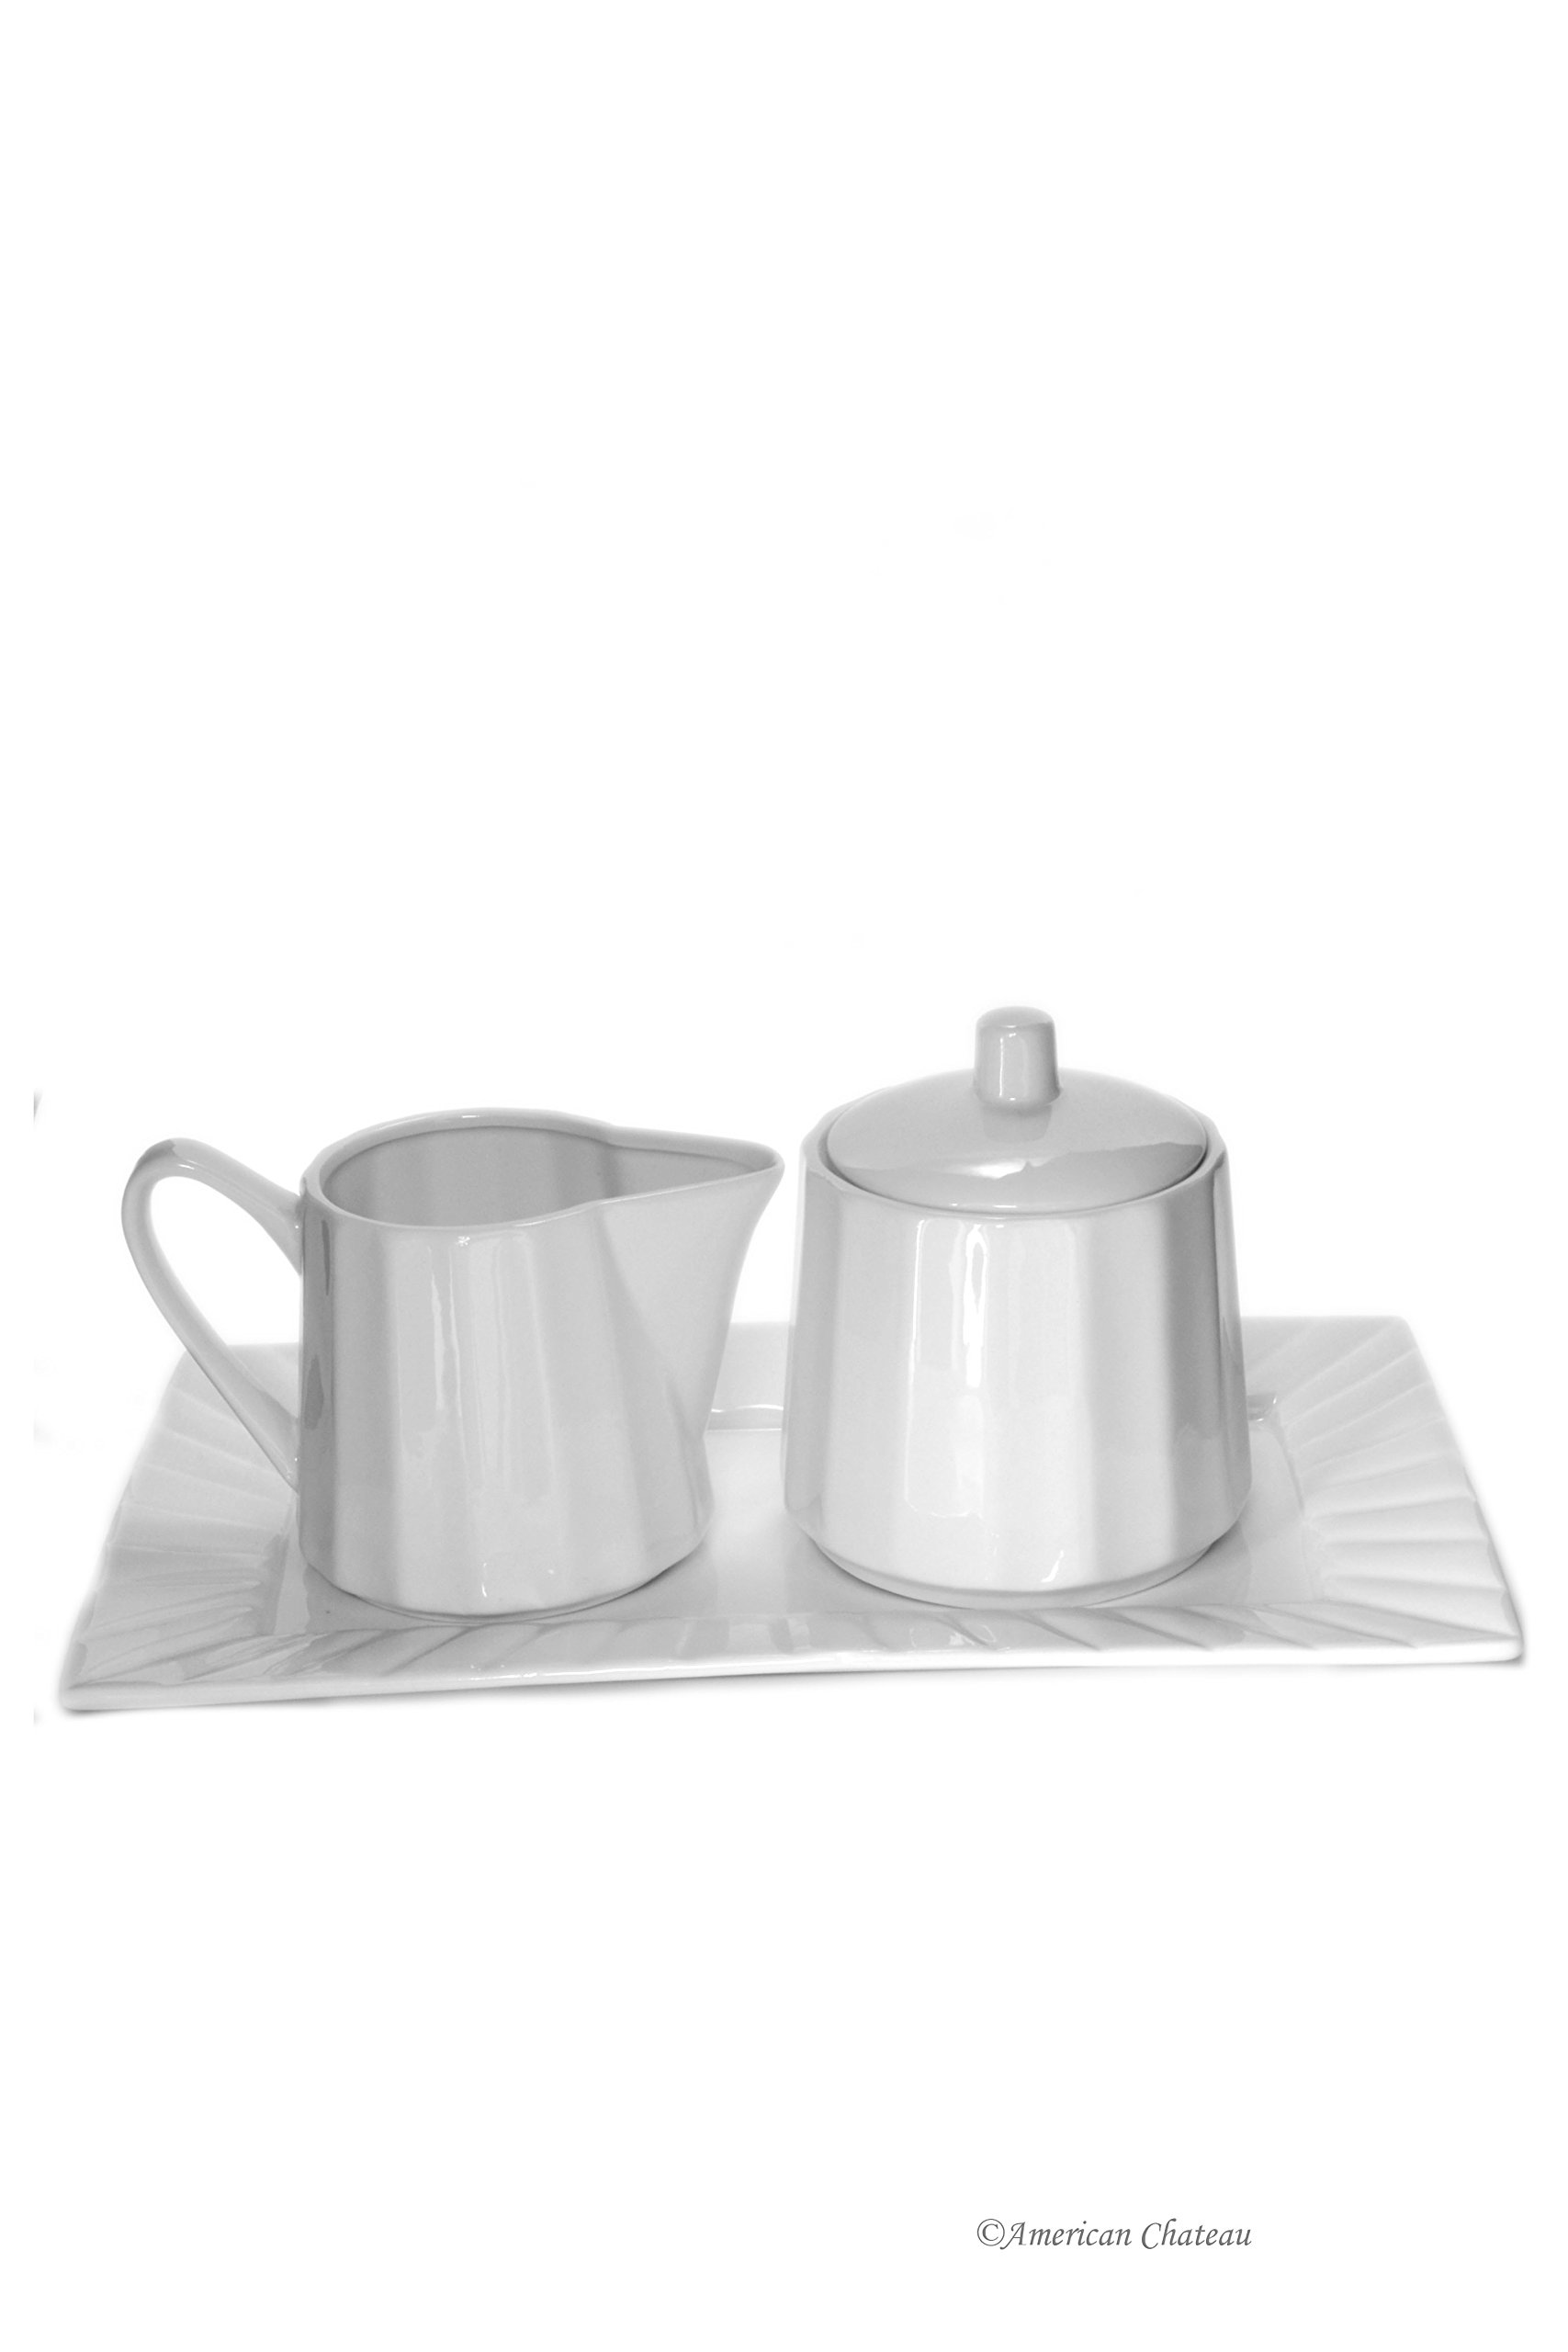 Modern Ribbed Coffee Porcelain White Covered Sugar Bowl & Creamer Set with Tray